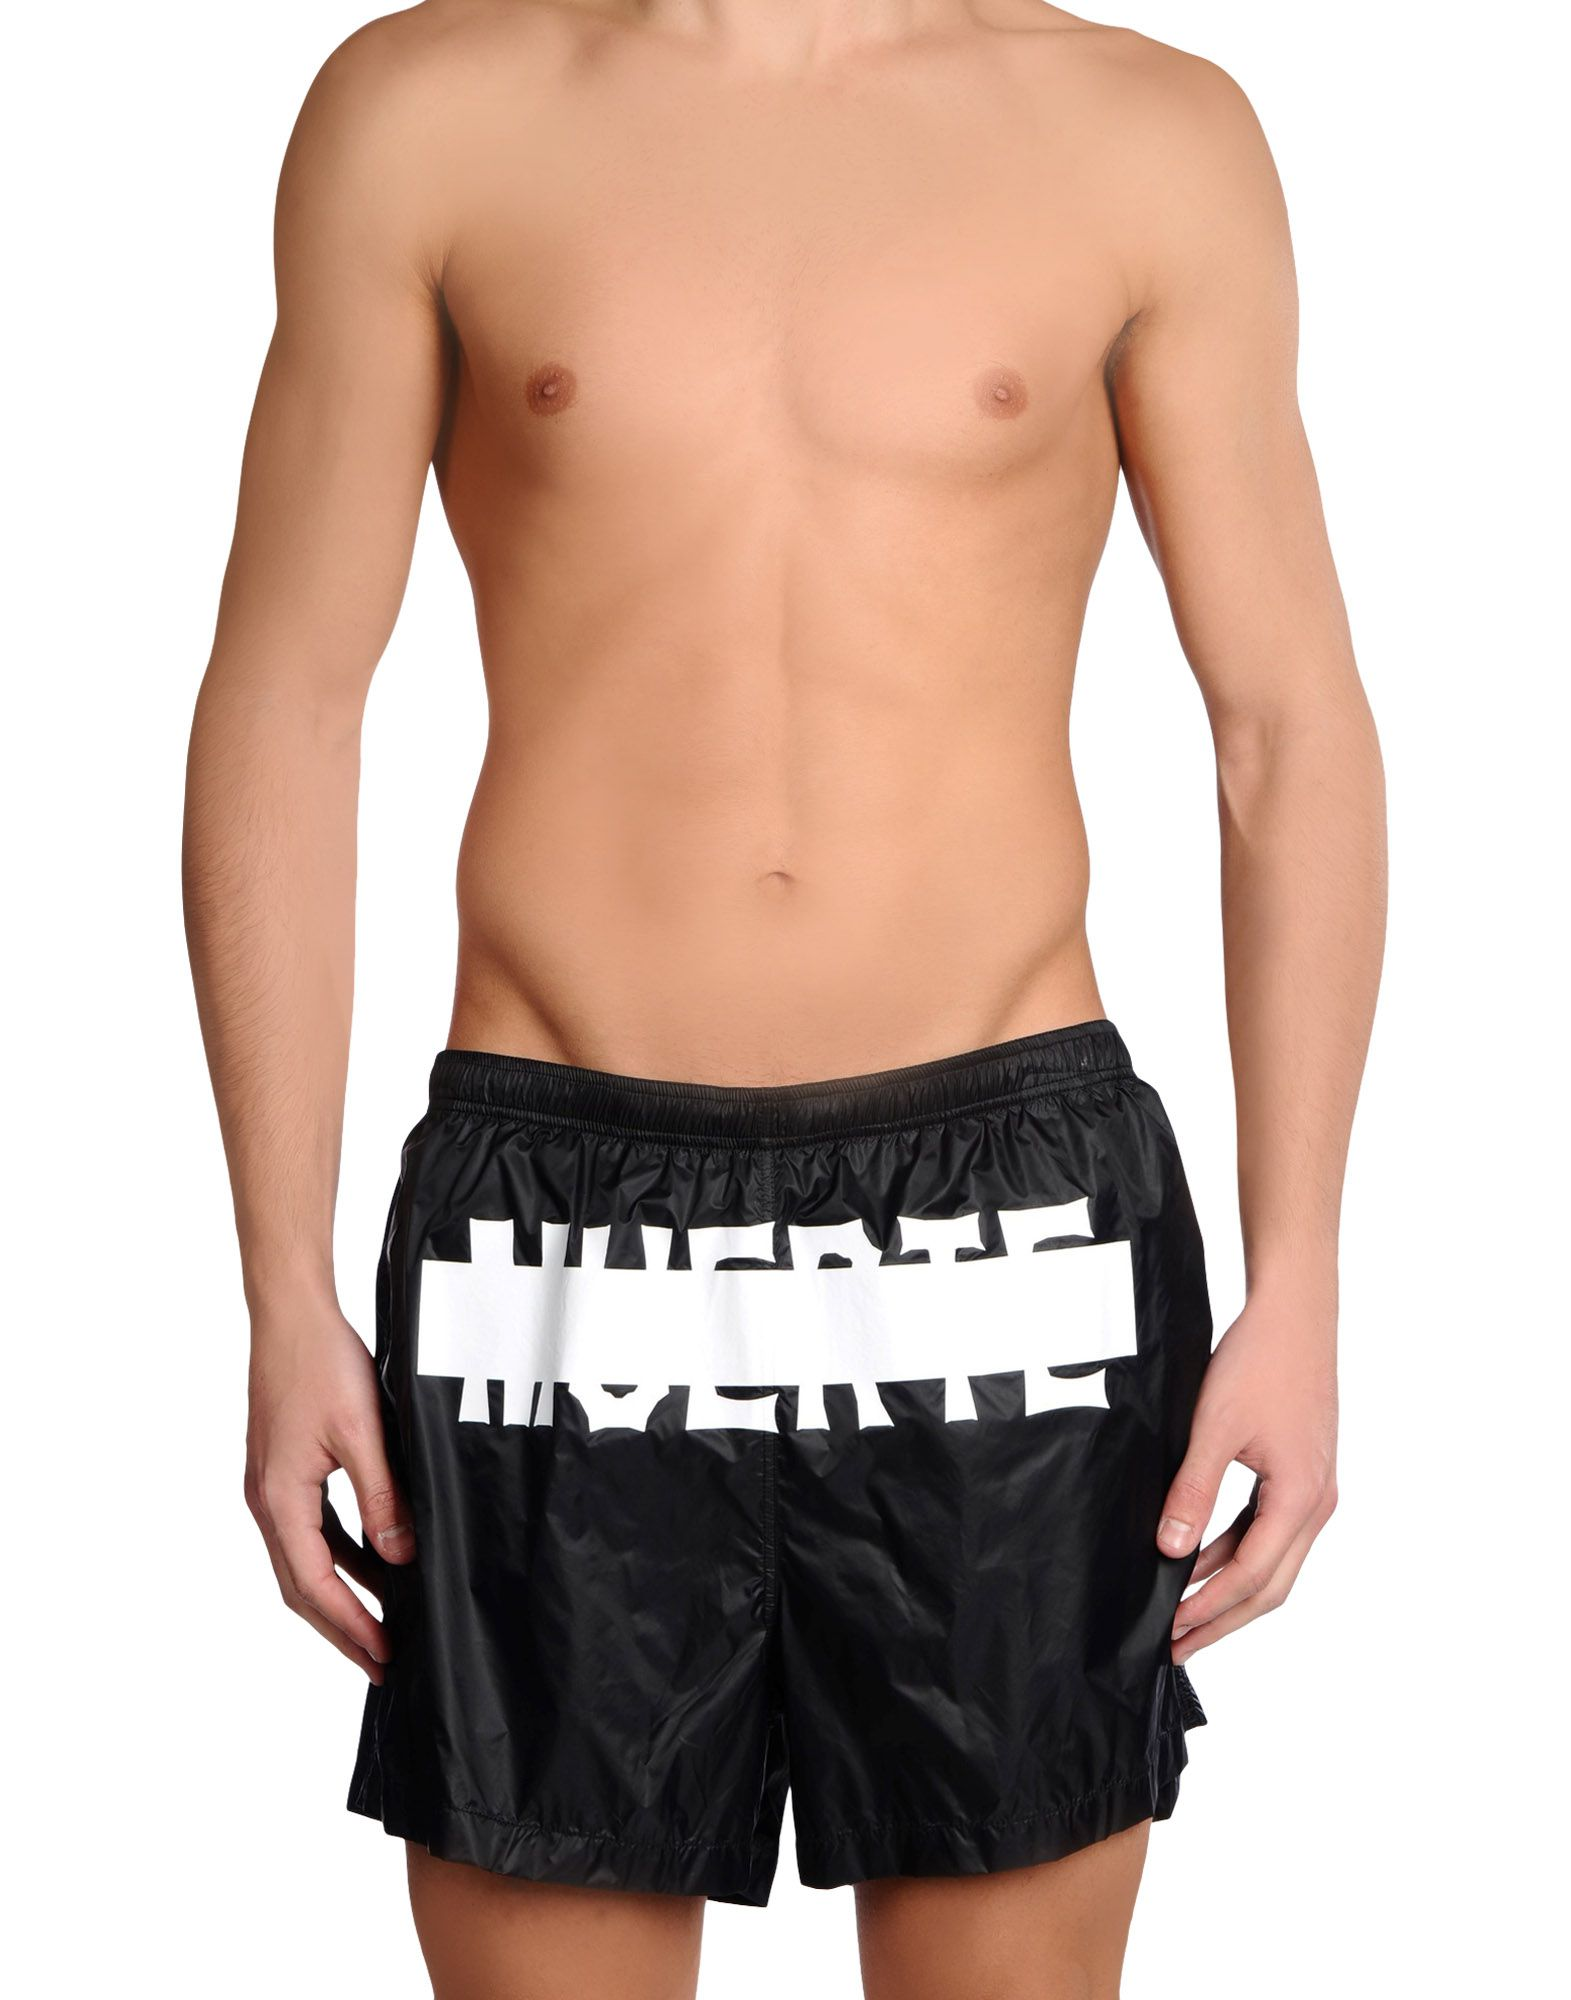 MARCELO BURLON Swim trunks. techno fabric, print, solid color, drawstring closure, internal slip, no pockets. 100% Polyamide